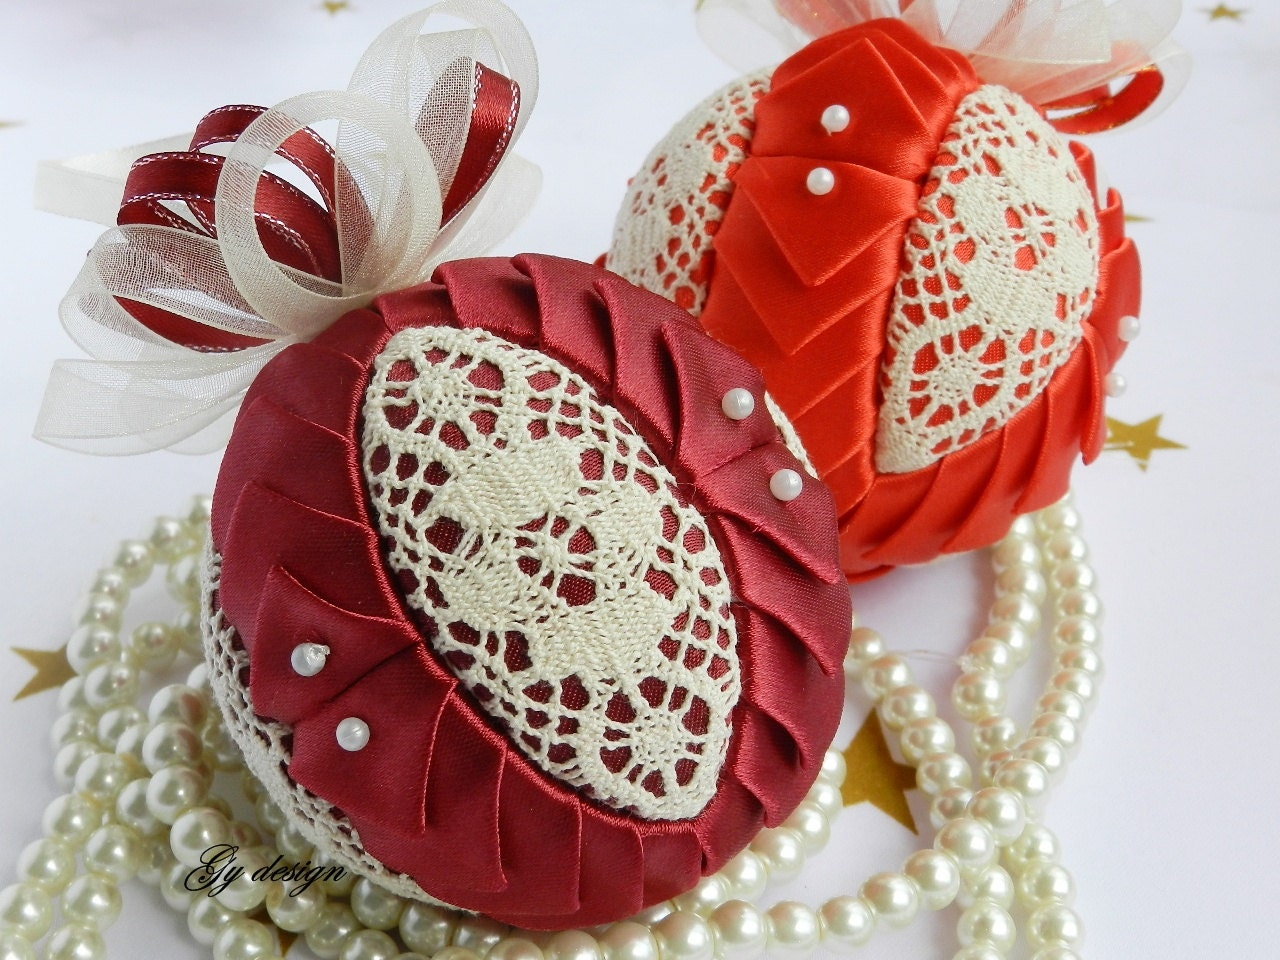 Lace Ornament Quilted Ball Ornament Handmade Ornament Fabric